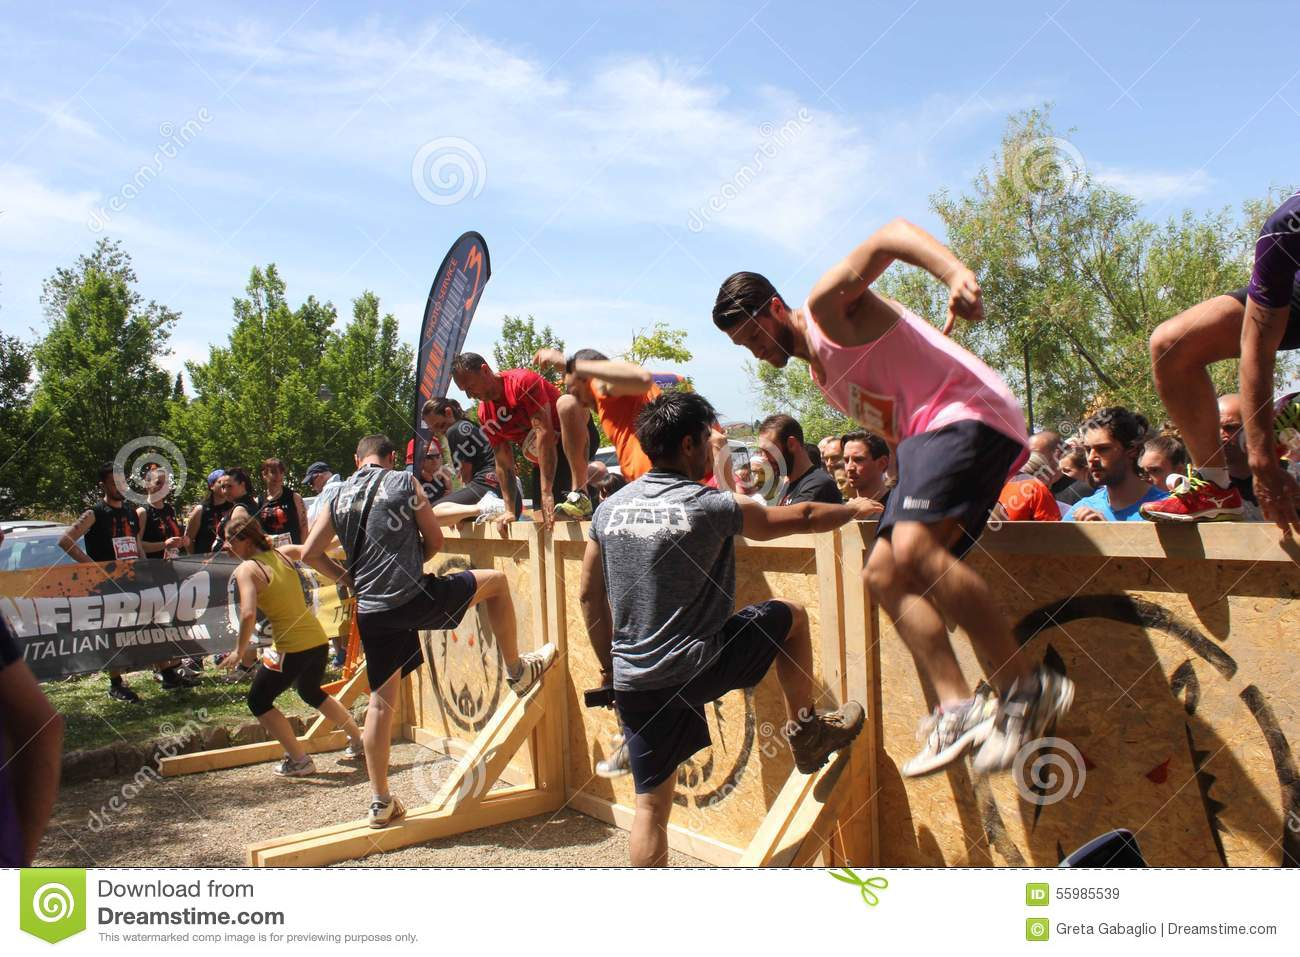 Signa Italy  city photos gallery : SIGNA, ITALY MAY 9 2015: Group of people jumping over an obstacle ...